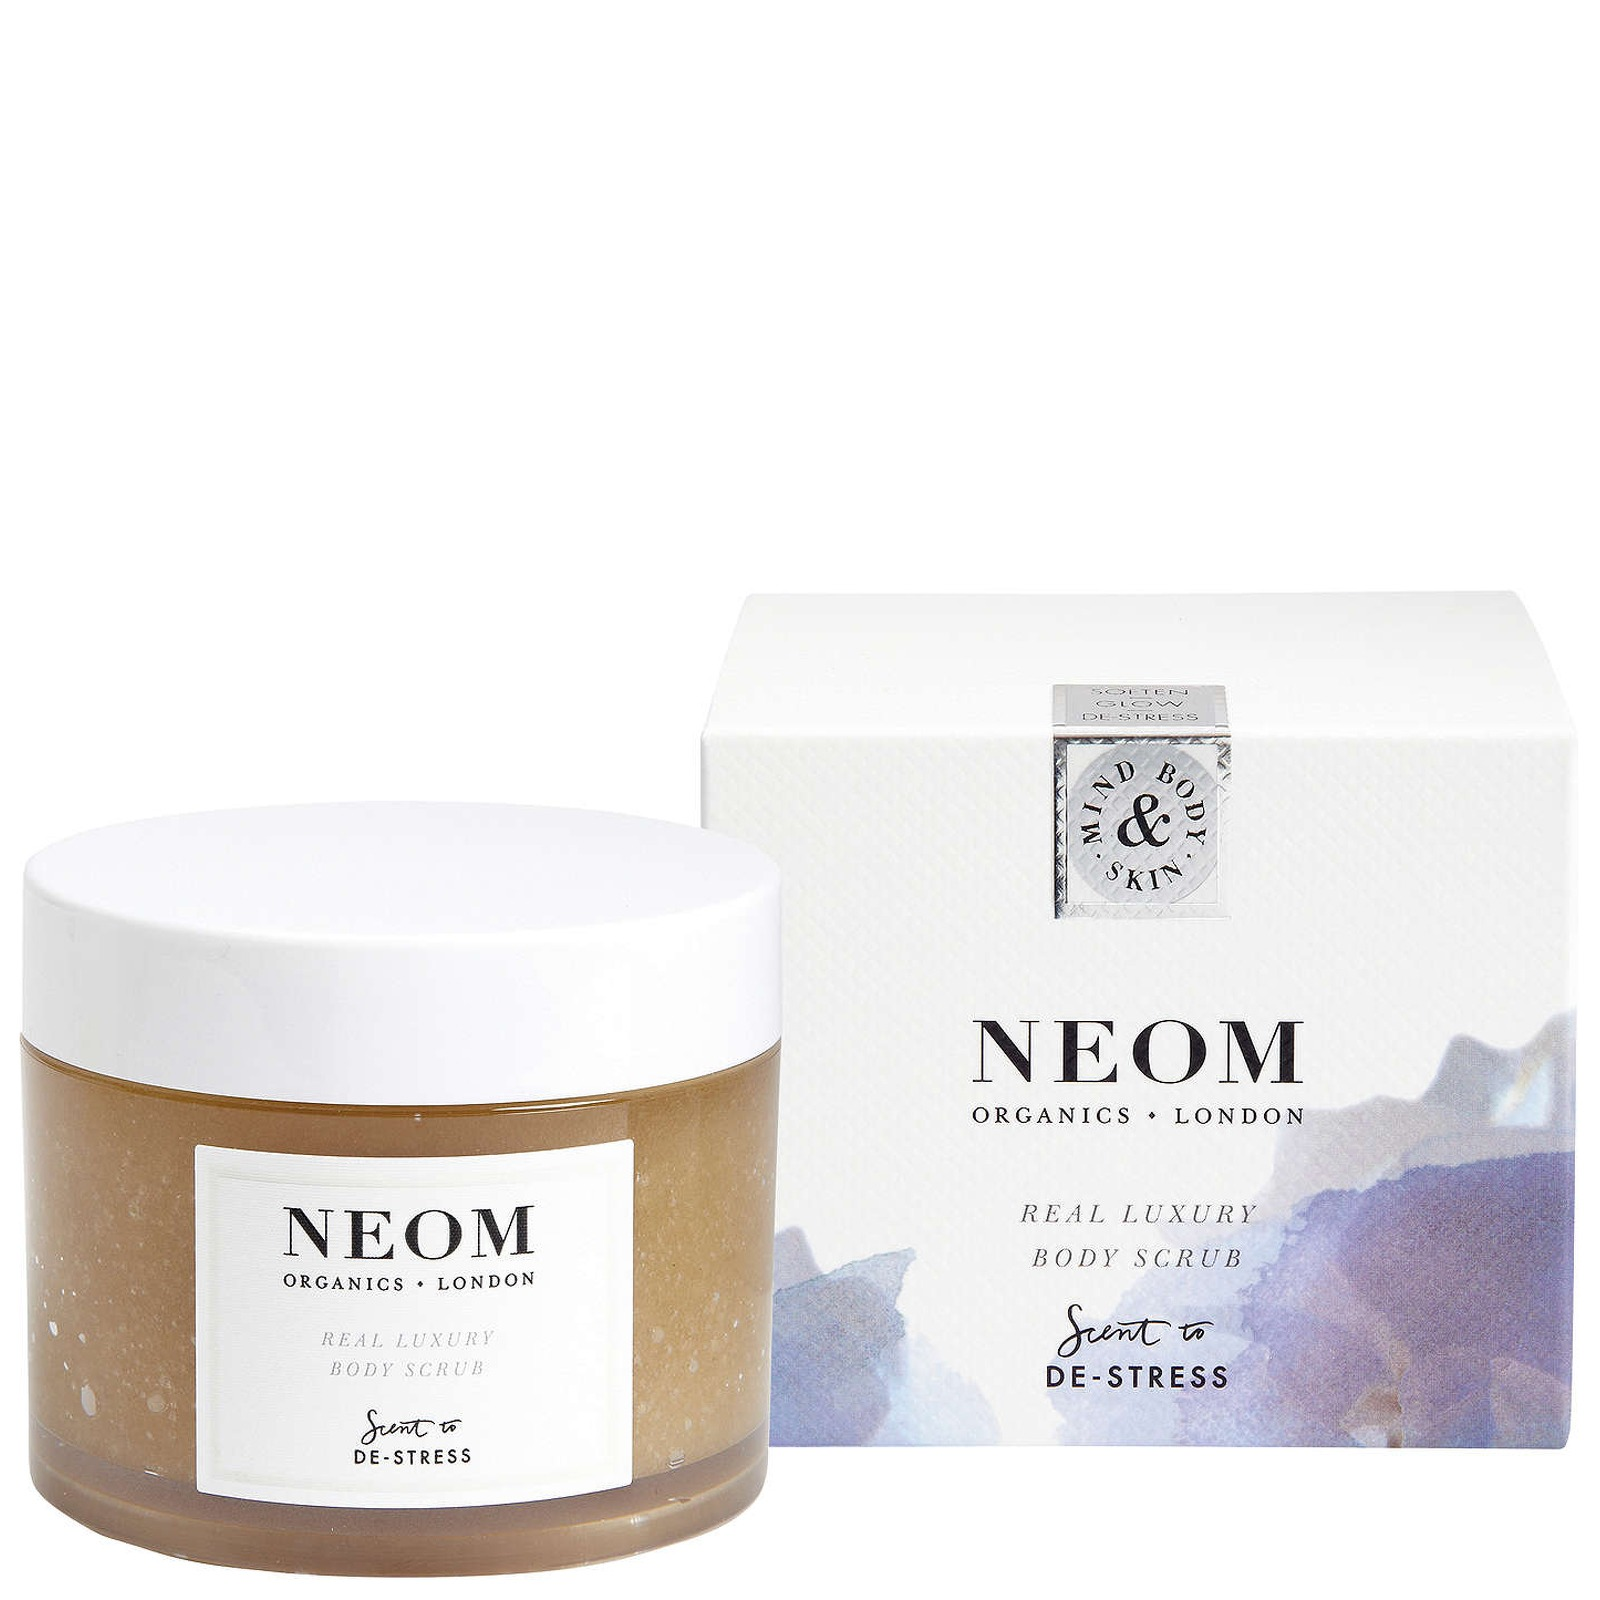 Neom Organics London Scent To De-Stress Real Luxury Body Scrub 332g